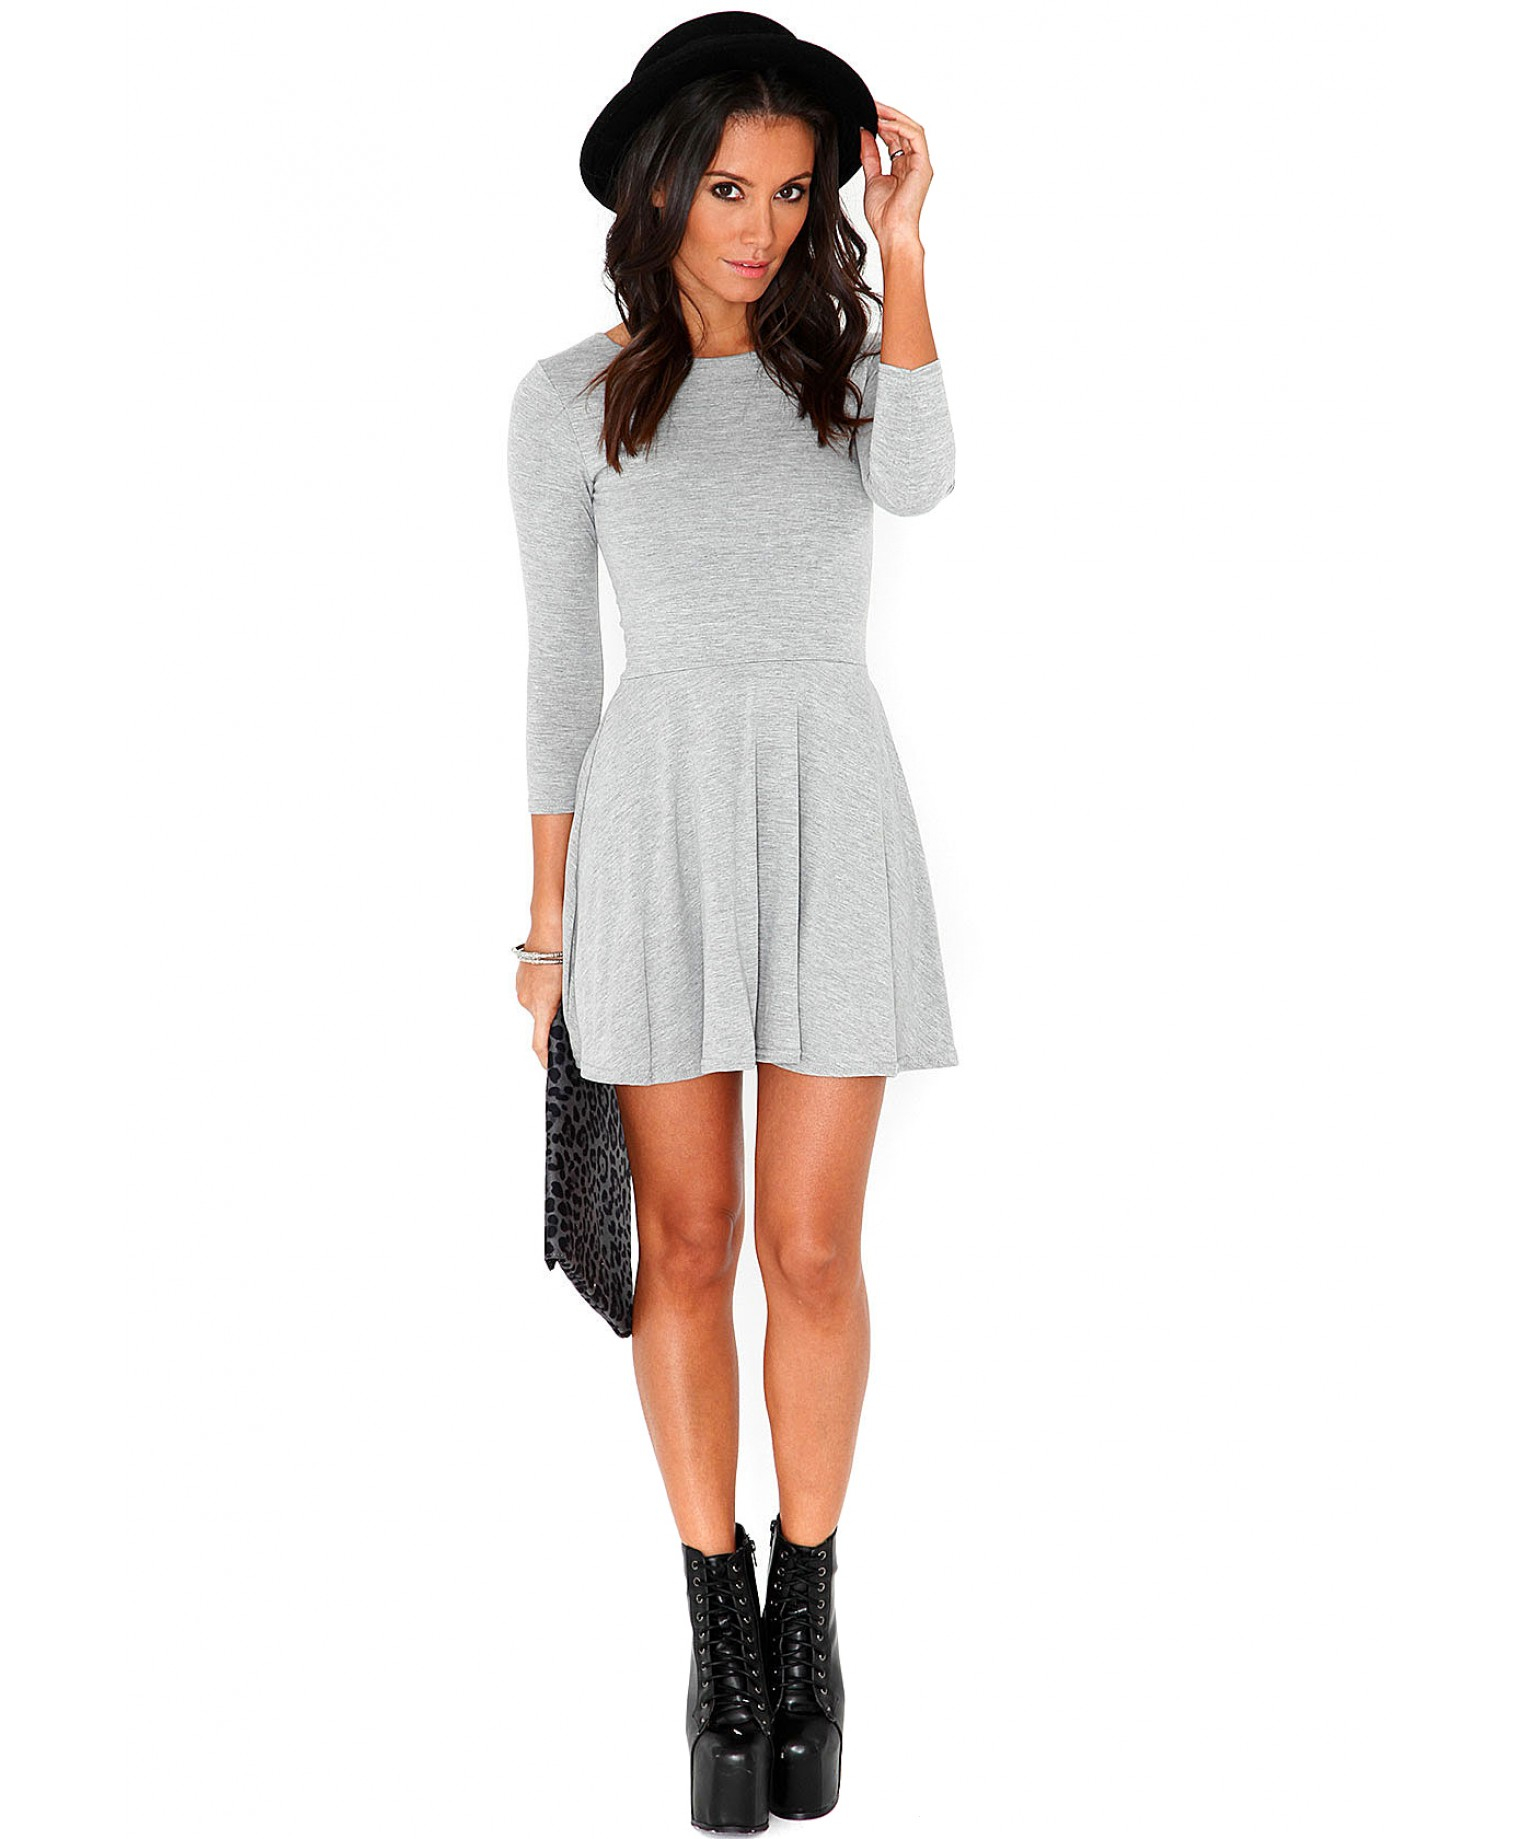 dcdc3044c84d Lyst - Missguided Poulina Value Long Sleeve Skater Dress in Grey in Gray